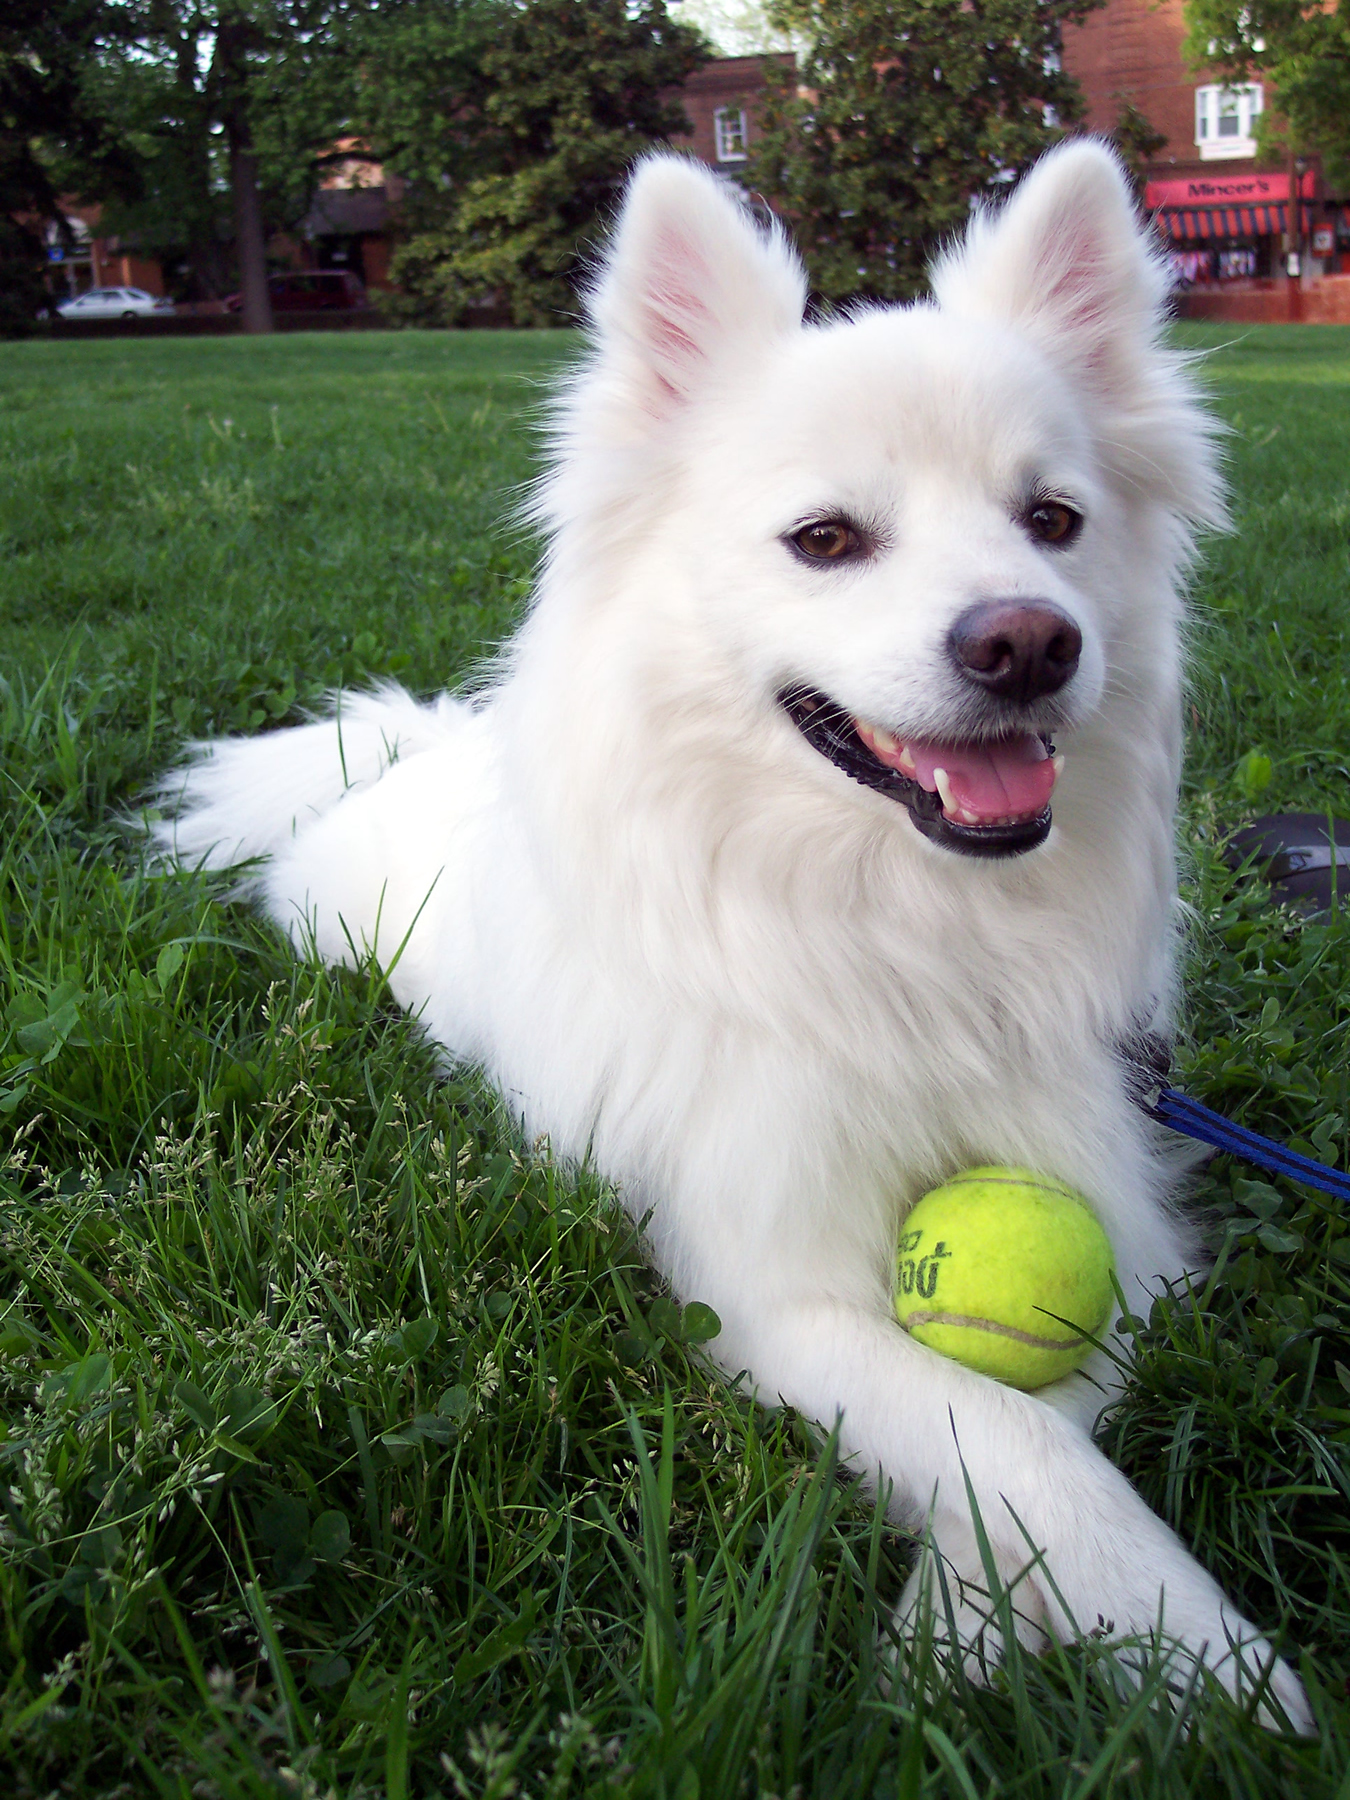 The American Eskimo Dog makes a beautiful